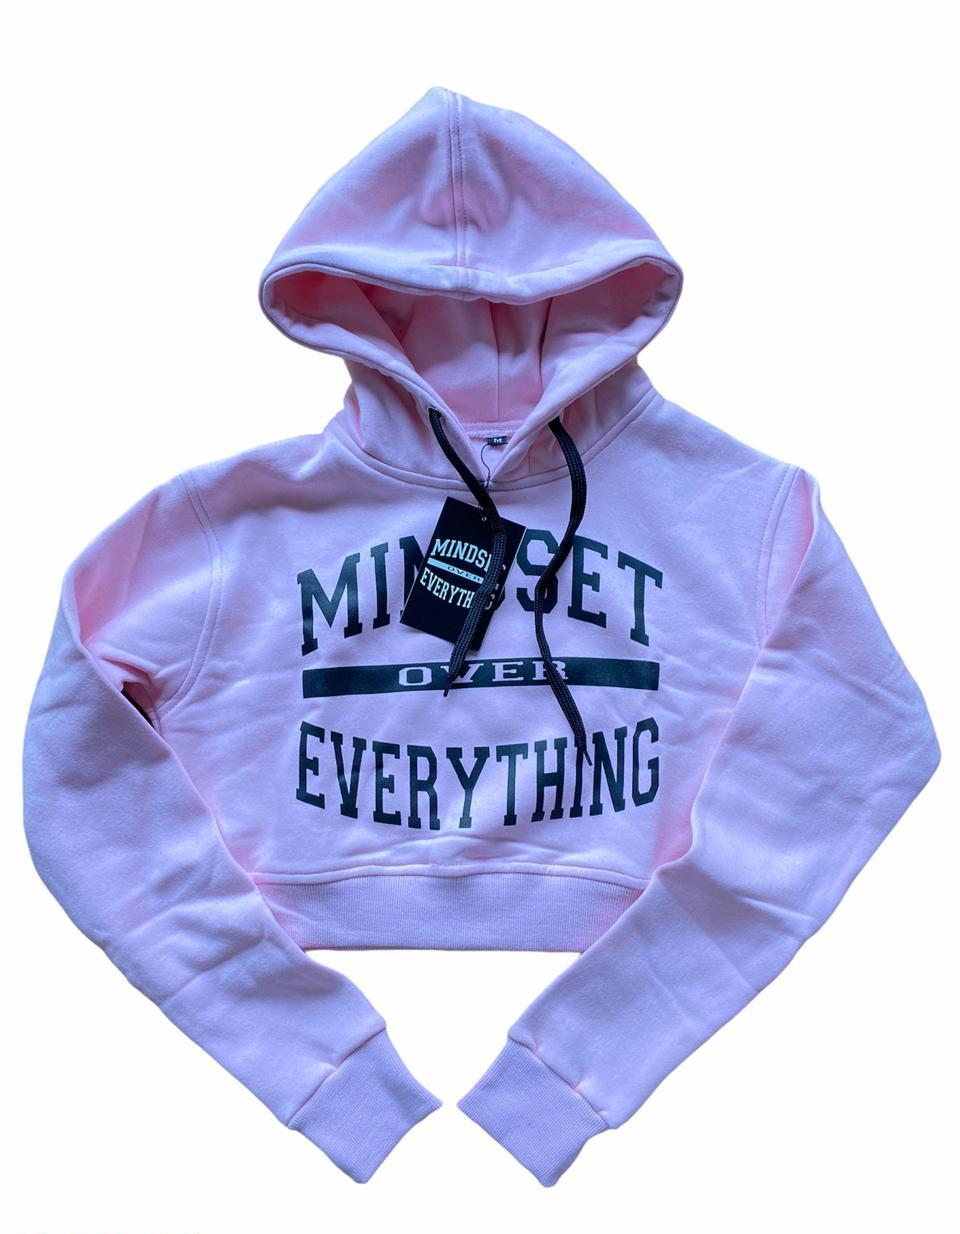 M.O.H. Crop Hoodies